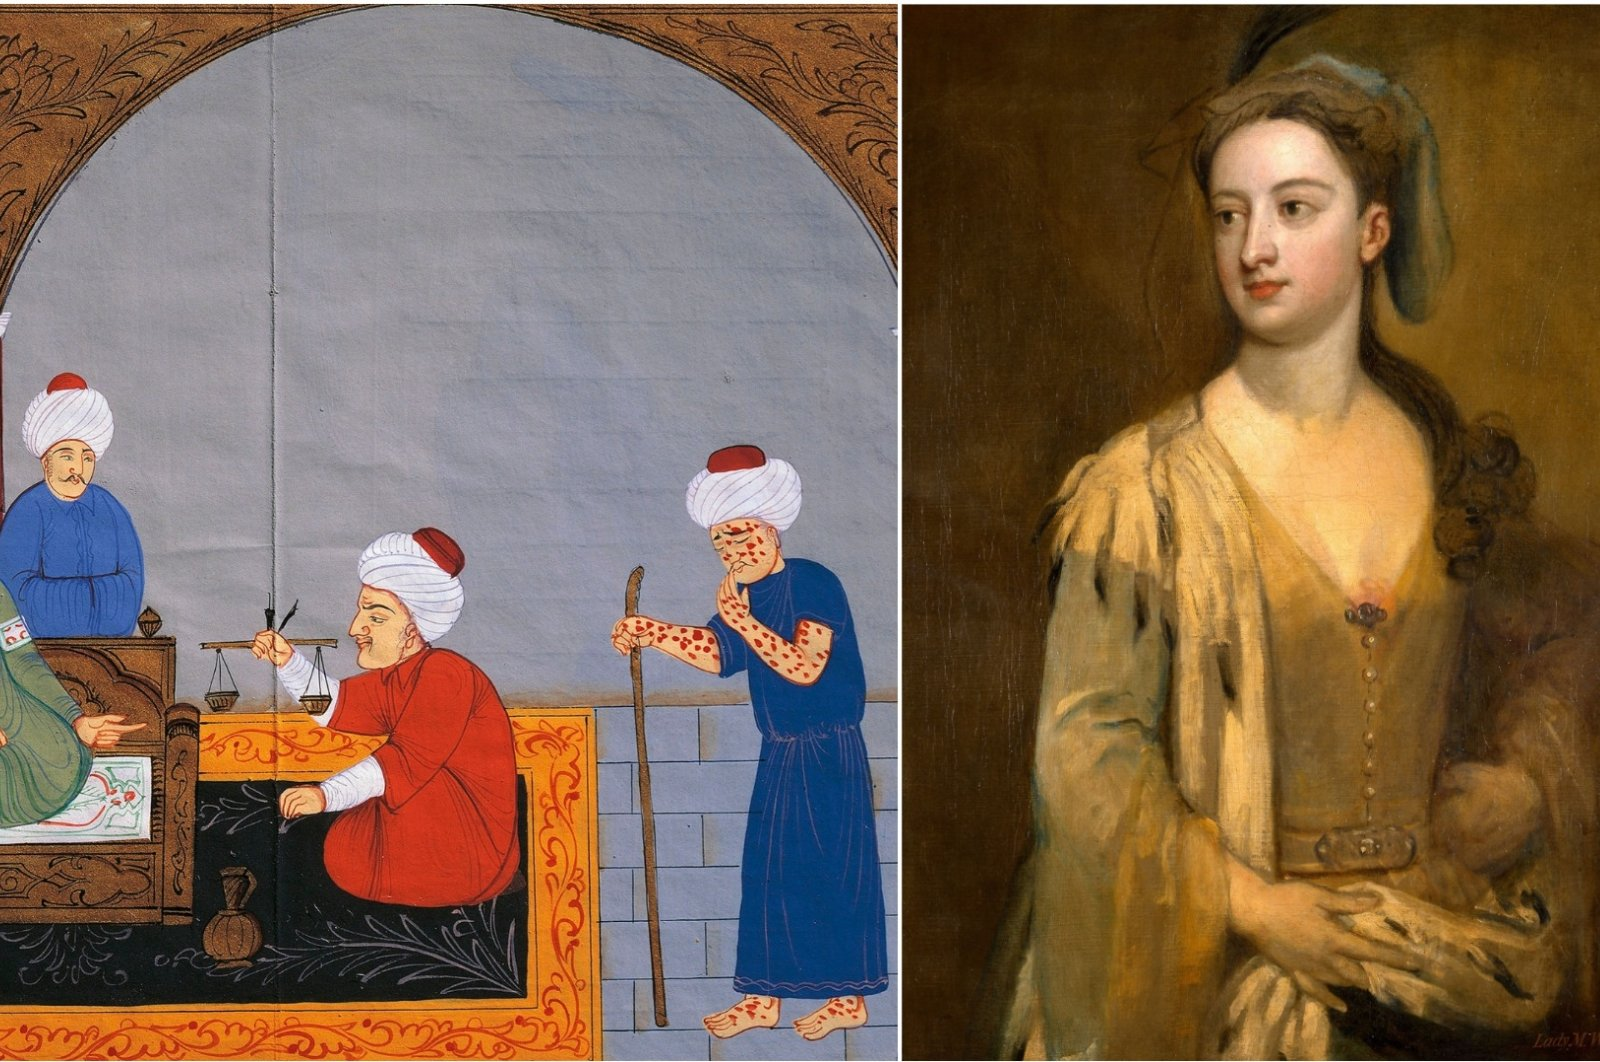 Ottoman manuscripts depict one of the fathers of early medicine, Ibn Sina, known in the West as Avicenna, treating patients with smallpox (L), but it wasn't until Lady Mary Wortley Montagu (R) saw it in Turkey that Europe developed the modern vaccine. (Istanbul University Library/Universal Images Group via Getty Images)